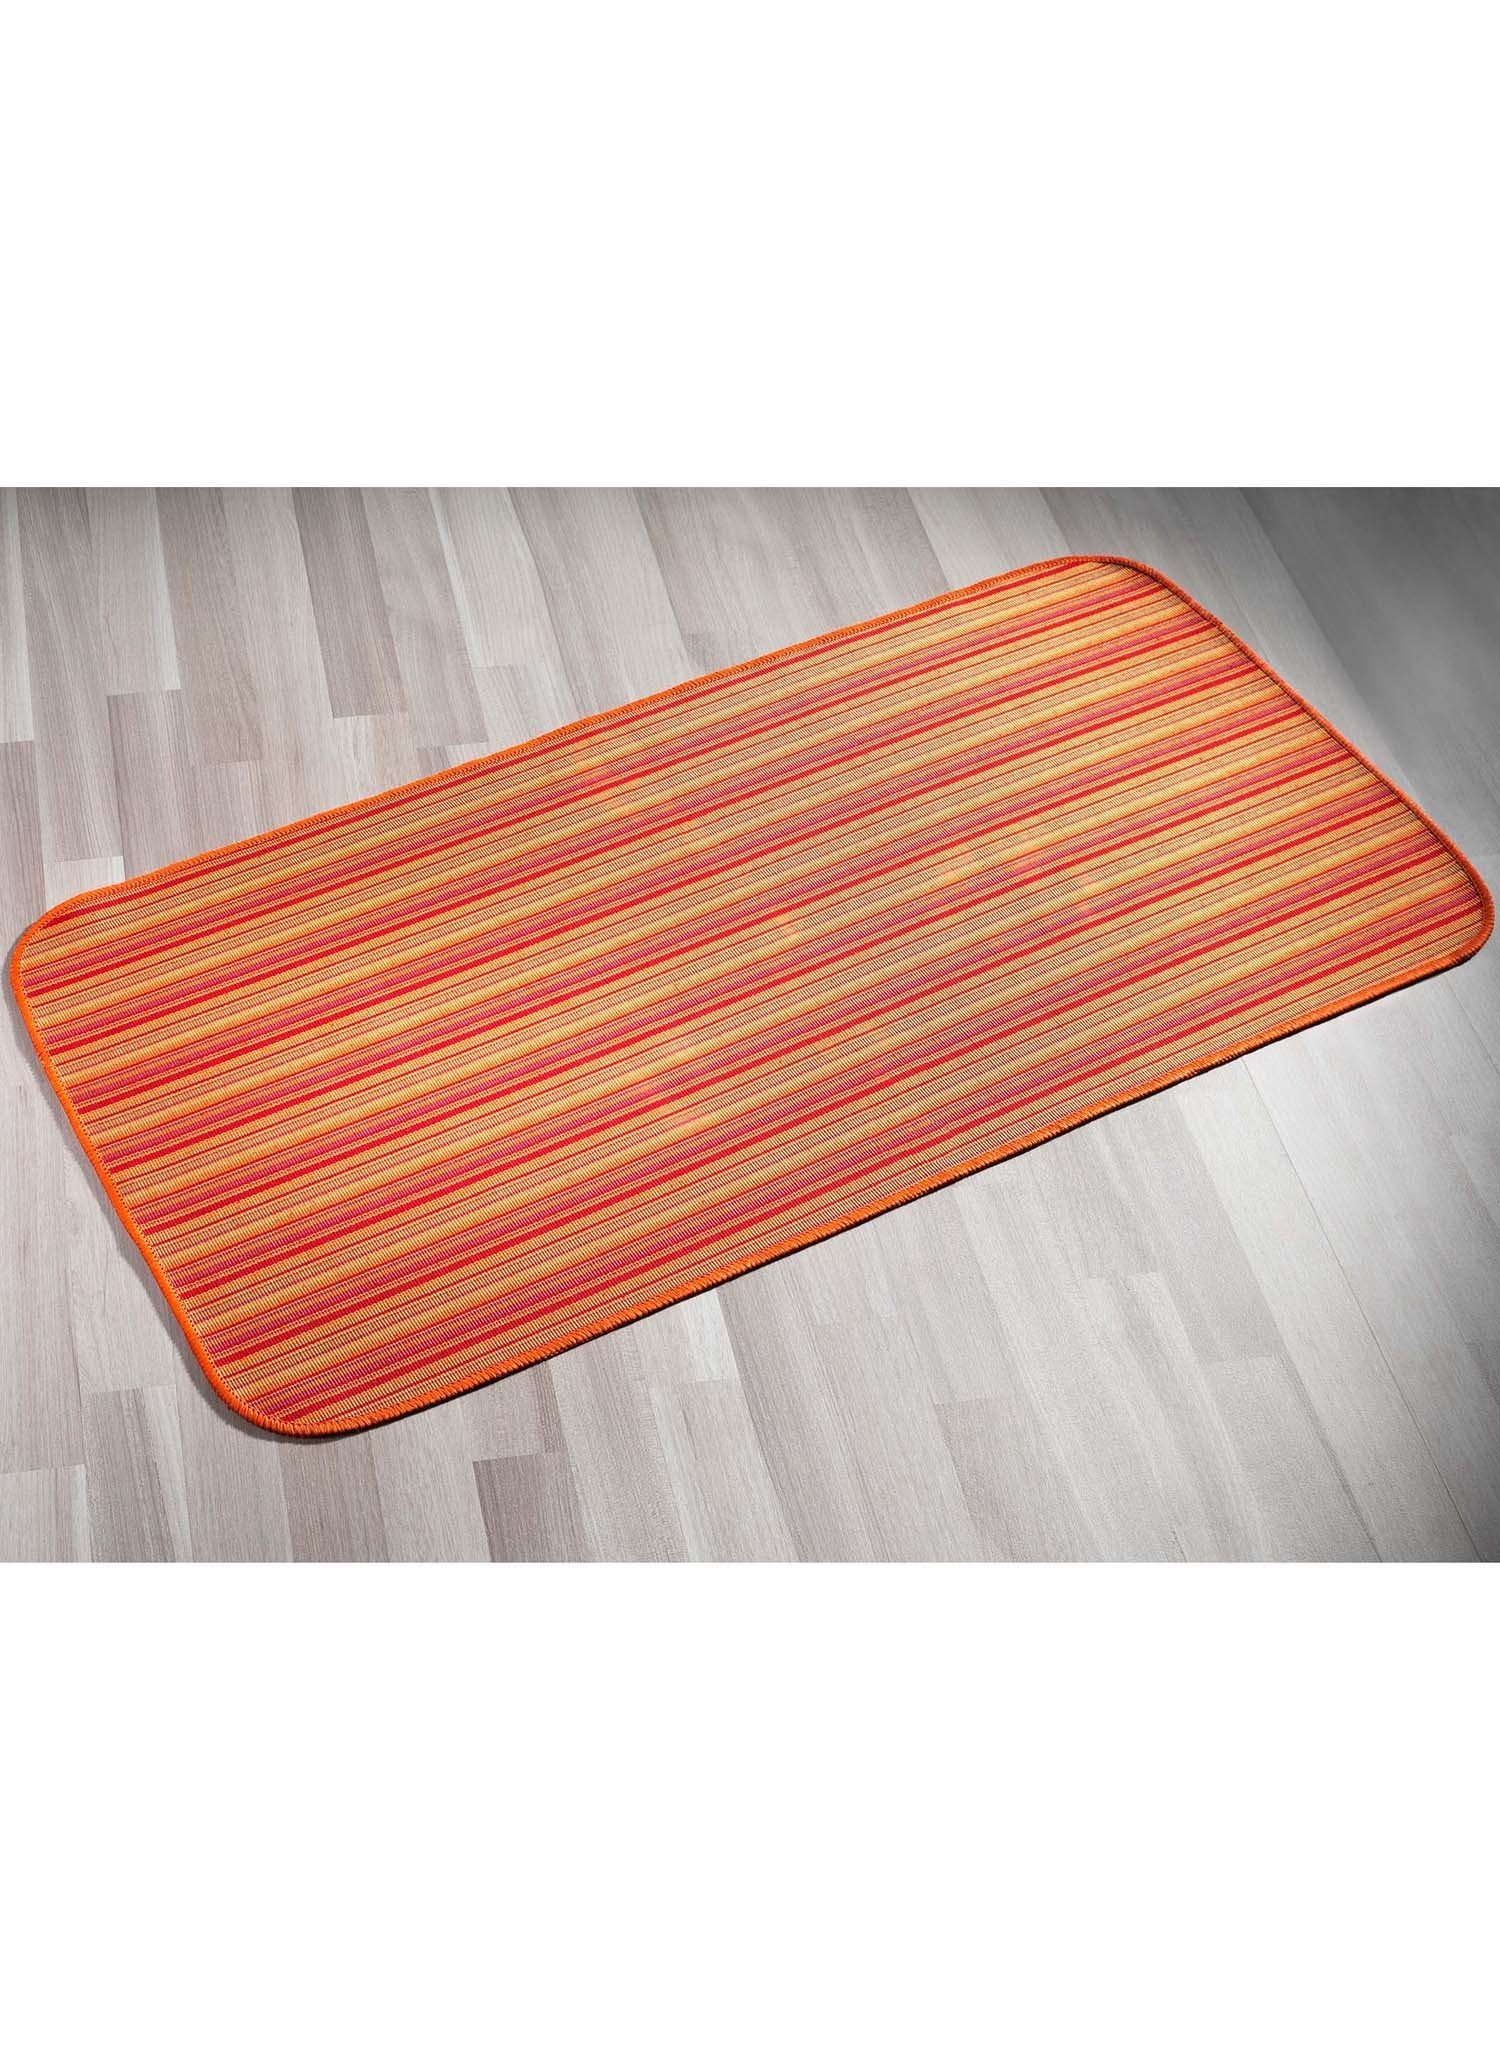 Finest tapis de cuisine orange with tapis de cuisine orange for Tapis de cuisine couleur orange